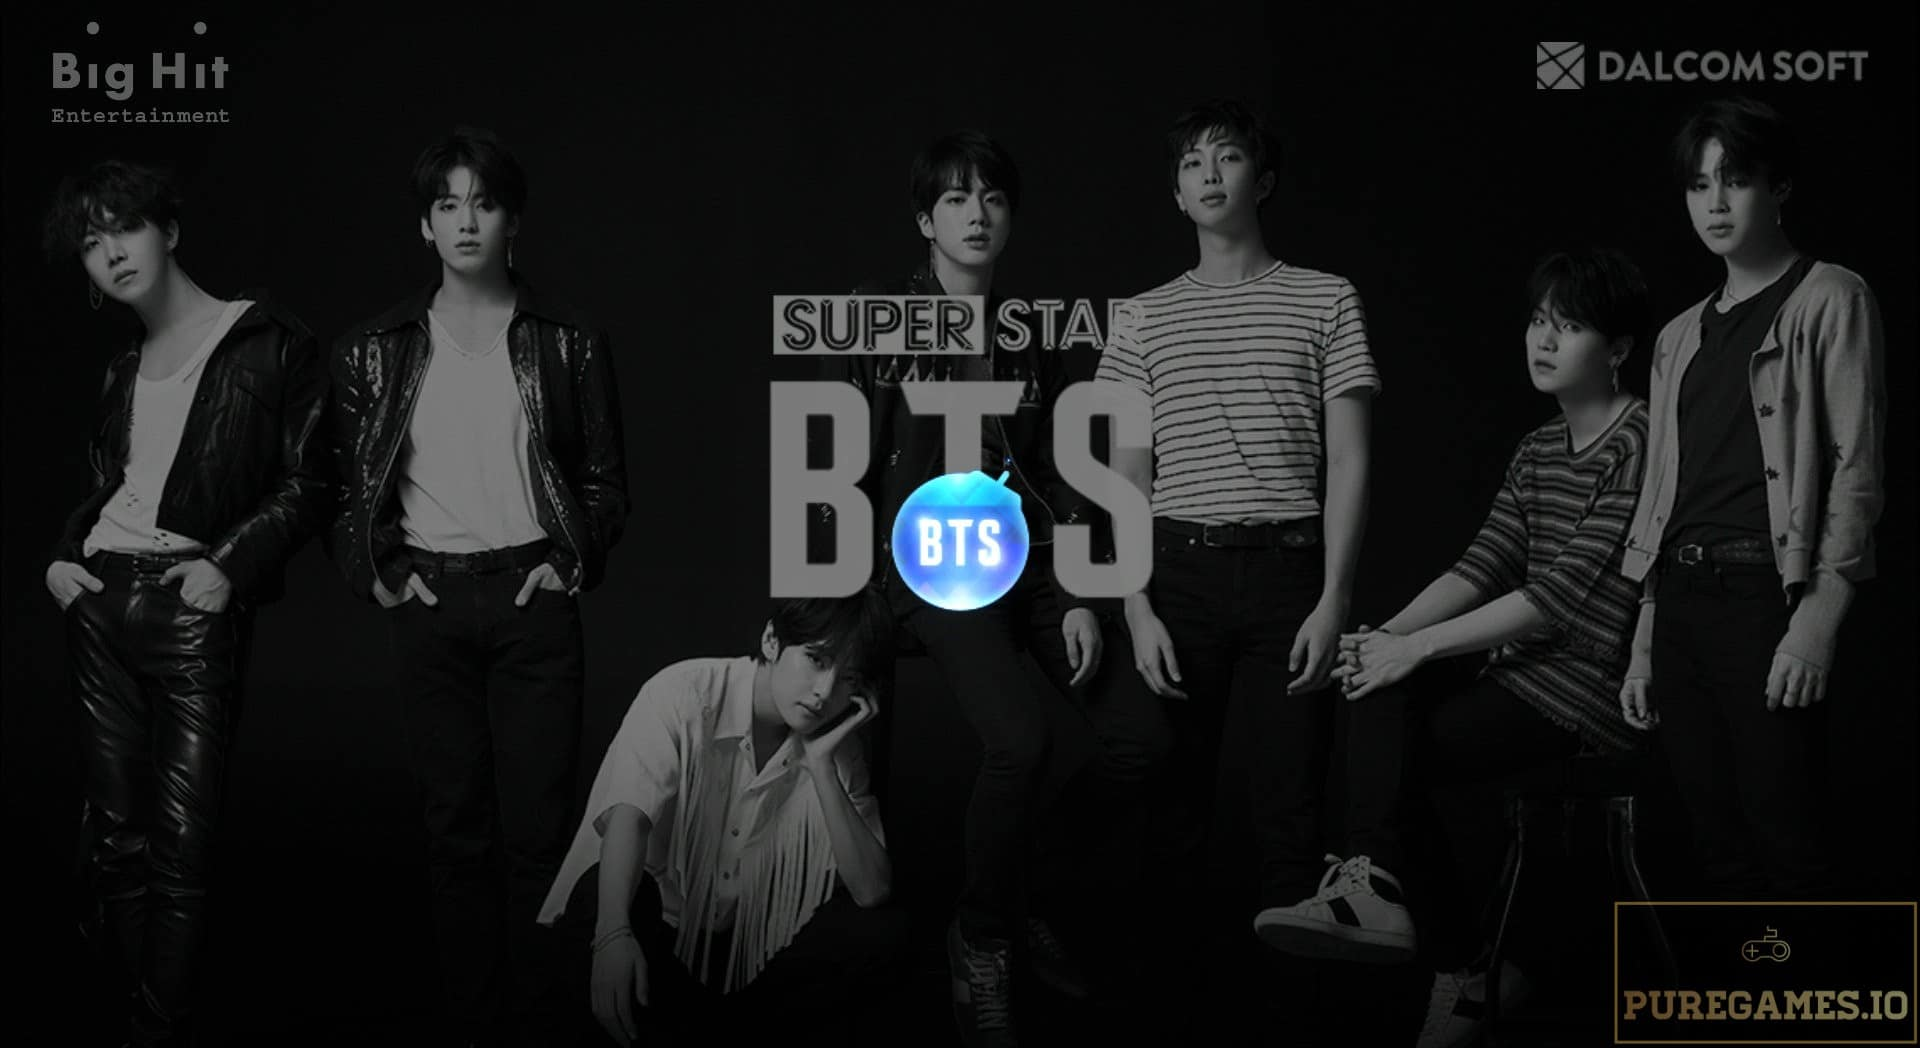 Download SuperStar BTS MOD APK - For Android/iOS 1